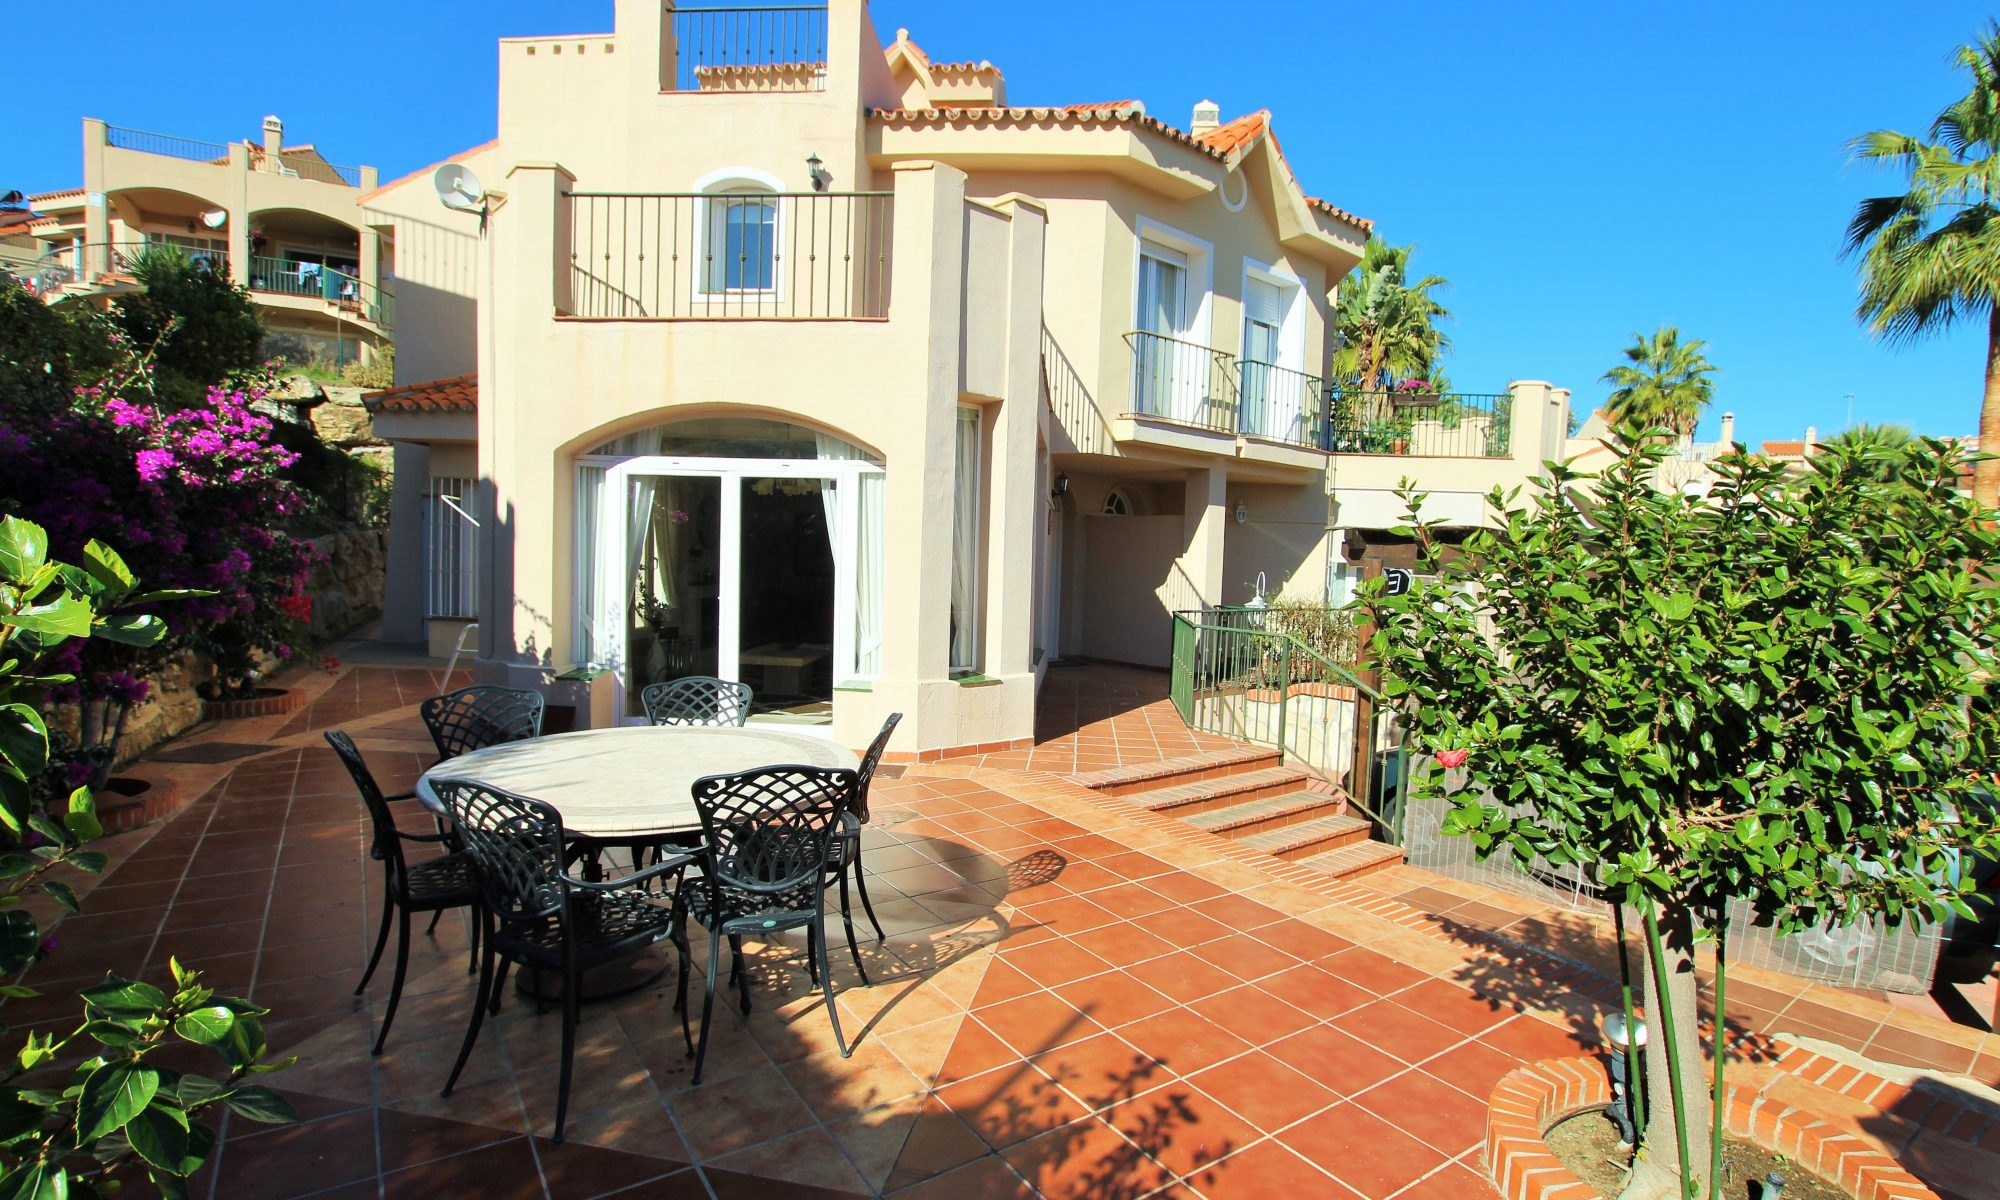 Beautiful house for sale in Riviera del Sol